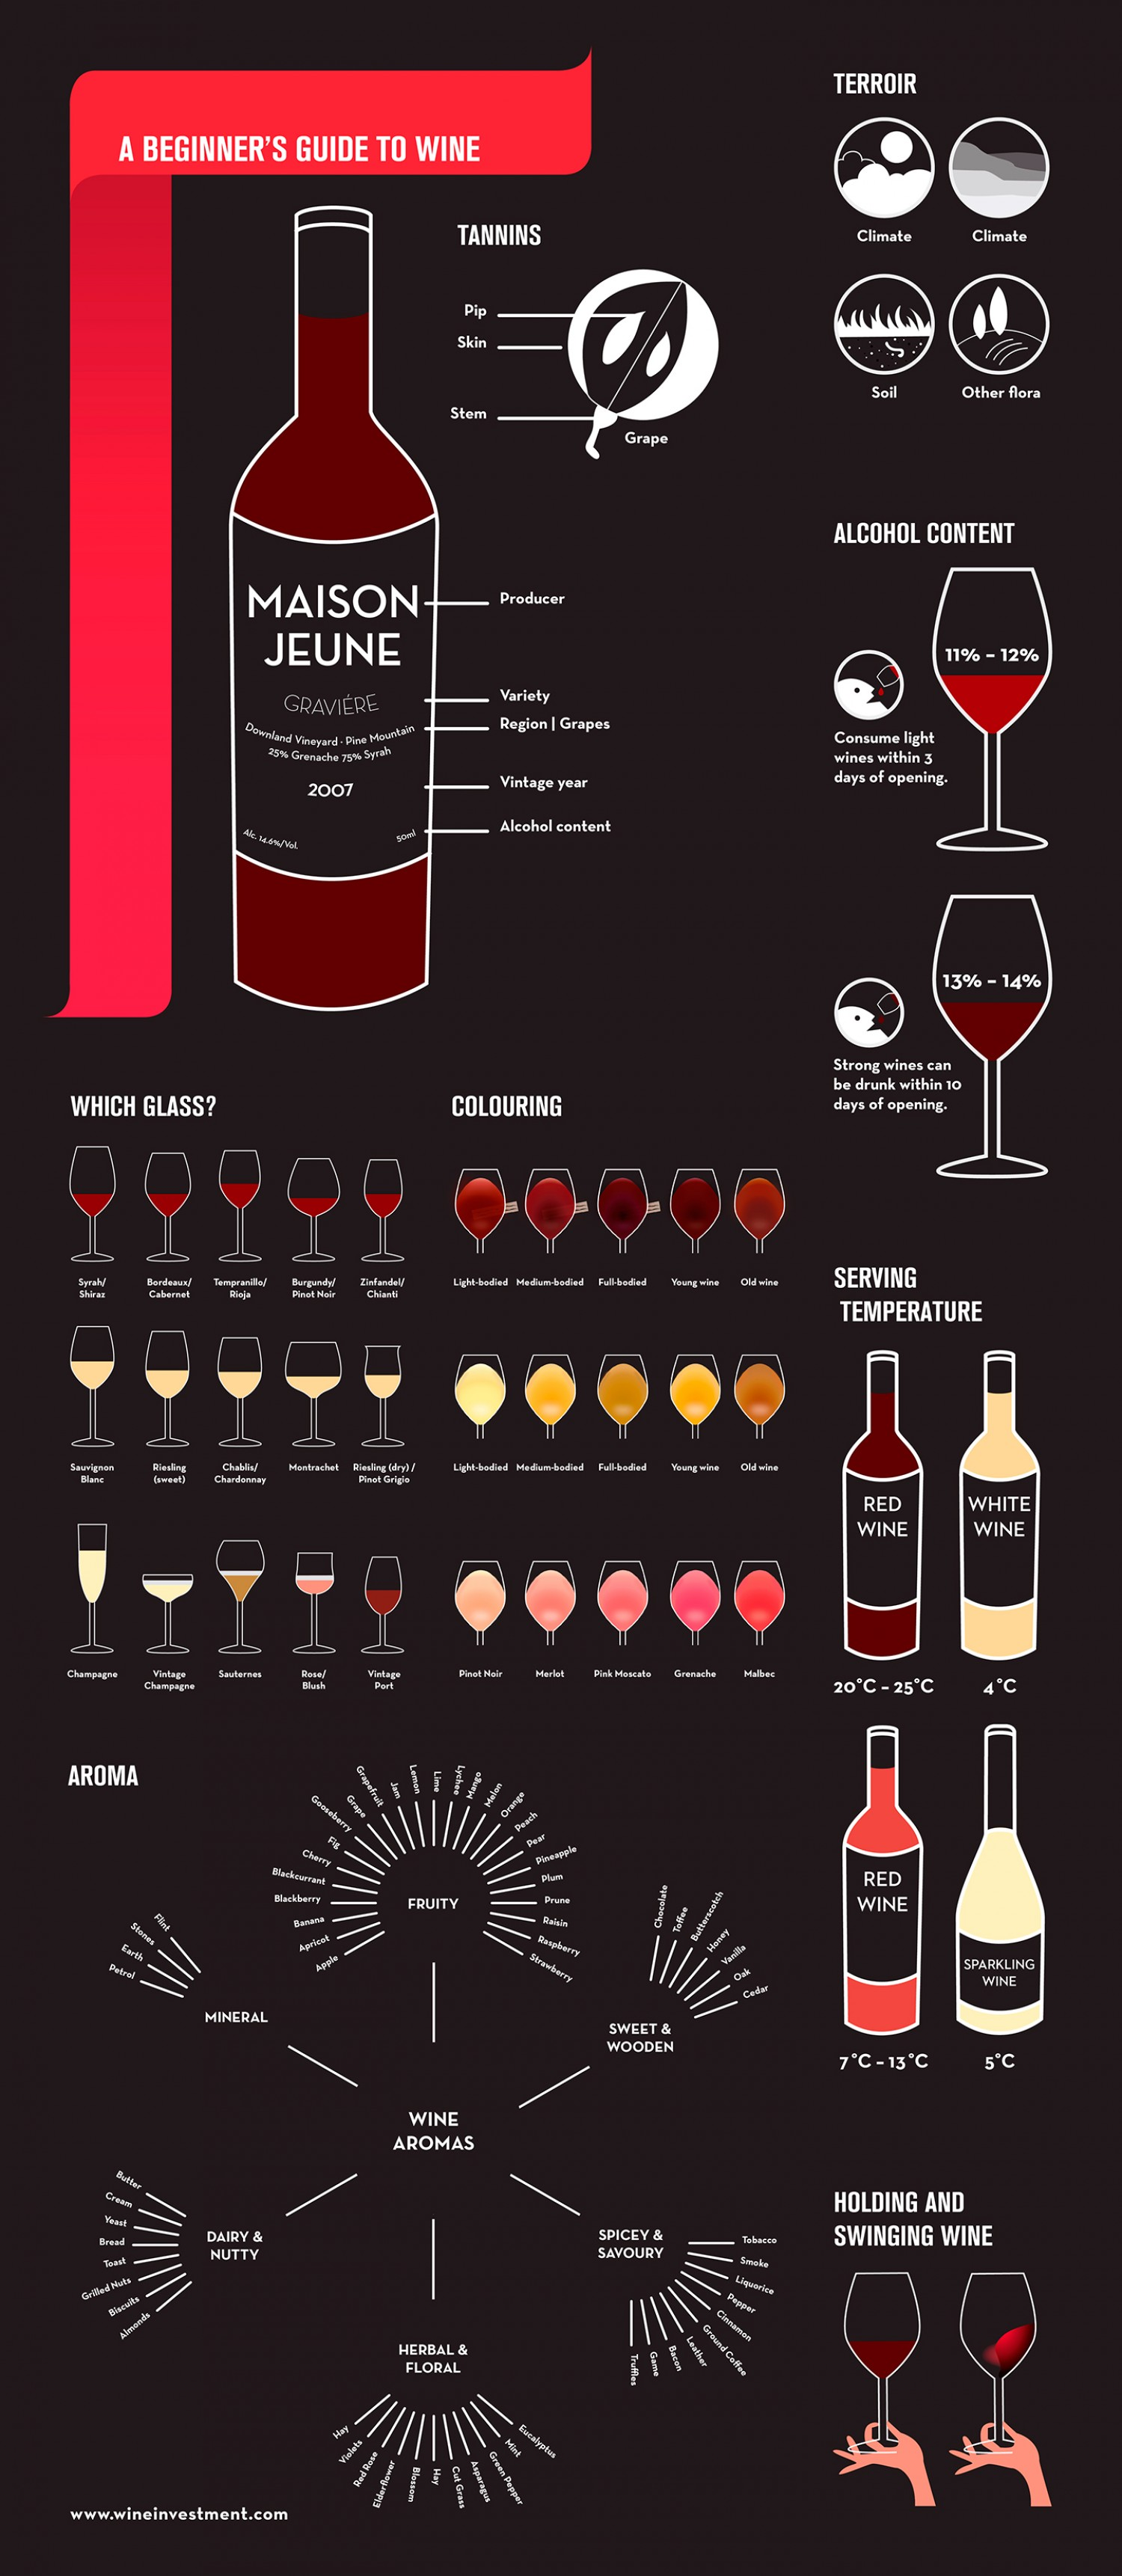 A Beginner's Guide to Wine